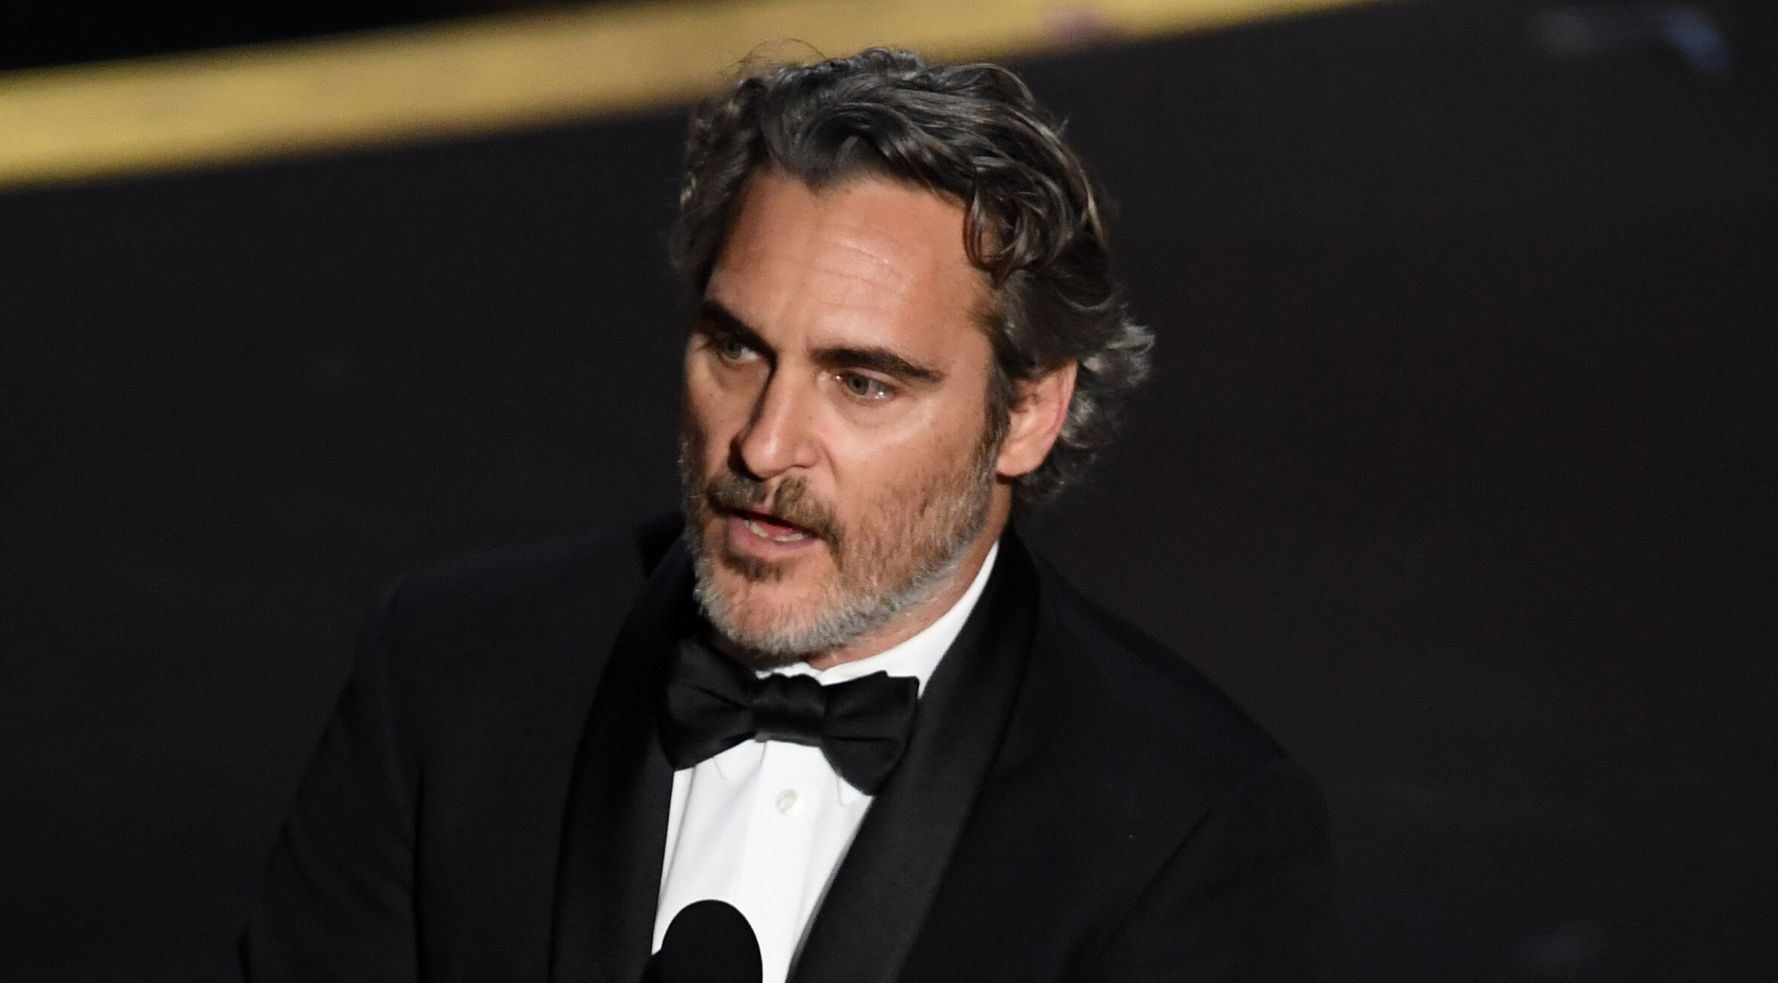 Joaquin Phoenix Honors Late Brother River In Emotional Oscars Speech On 'Injustice'